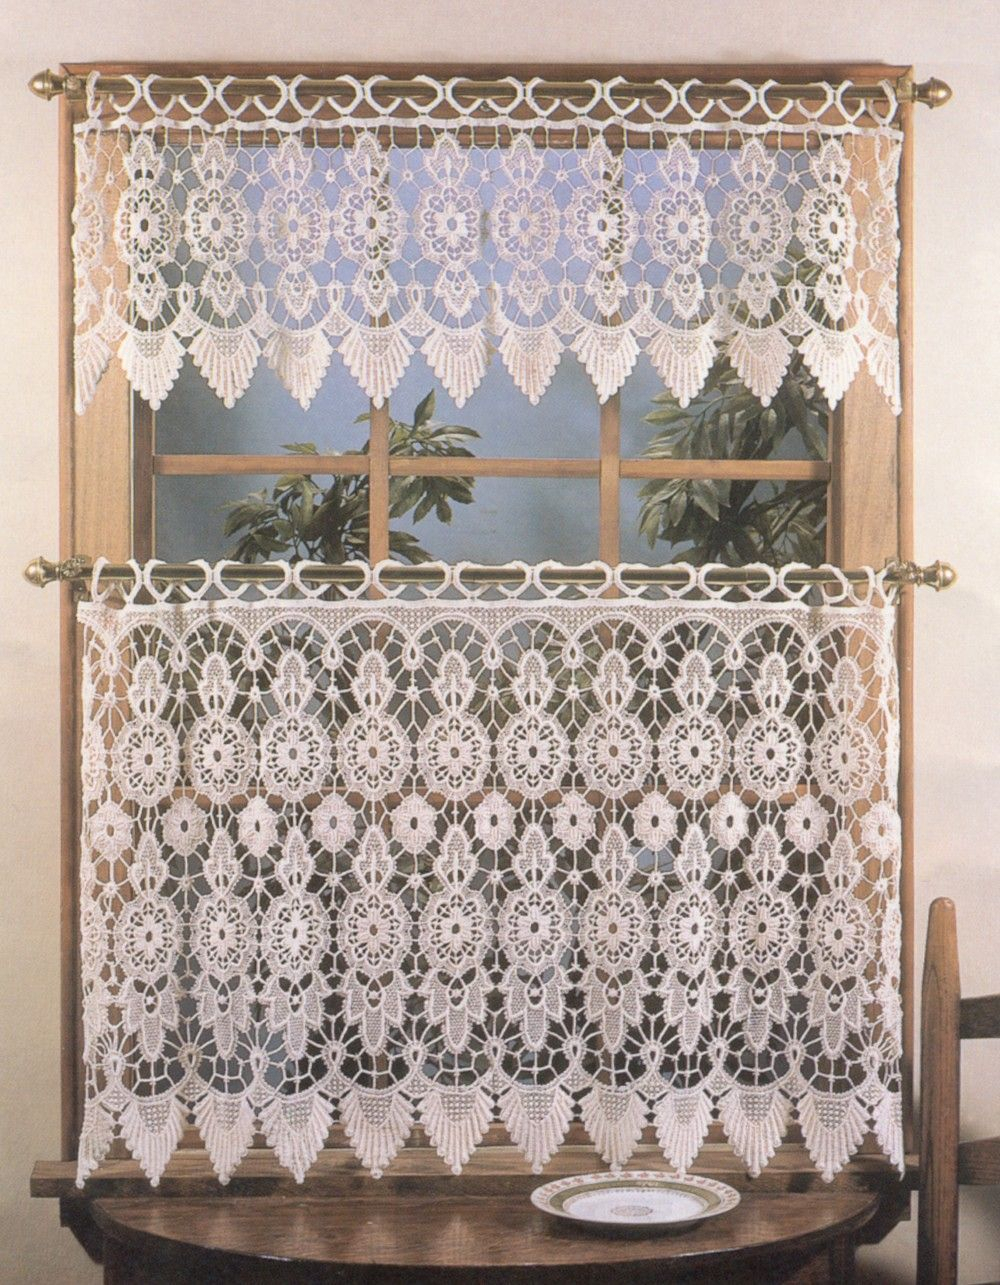 Curtain & Bath Outlet – Medallion Macrame Curtain Tier | Diy Inside French Vanilla Country Style Curtain Parts With White Daisy Lace Accent (View 17 of 20)